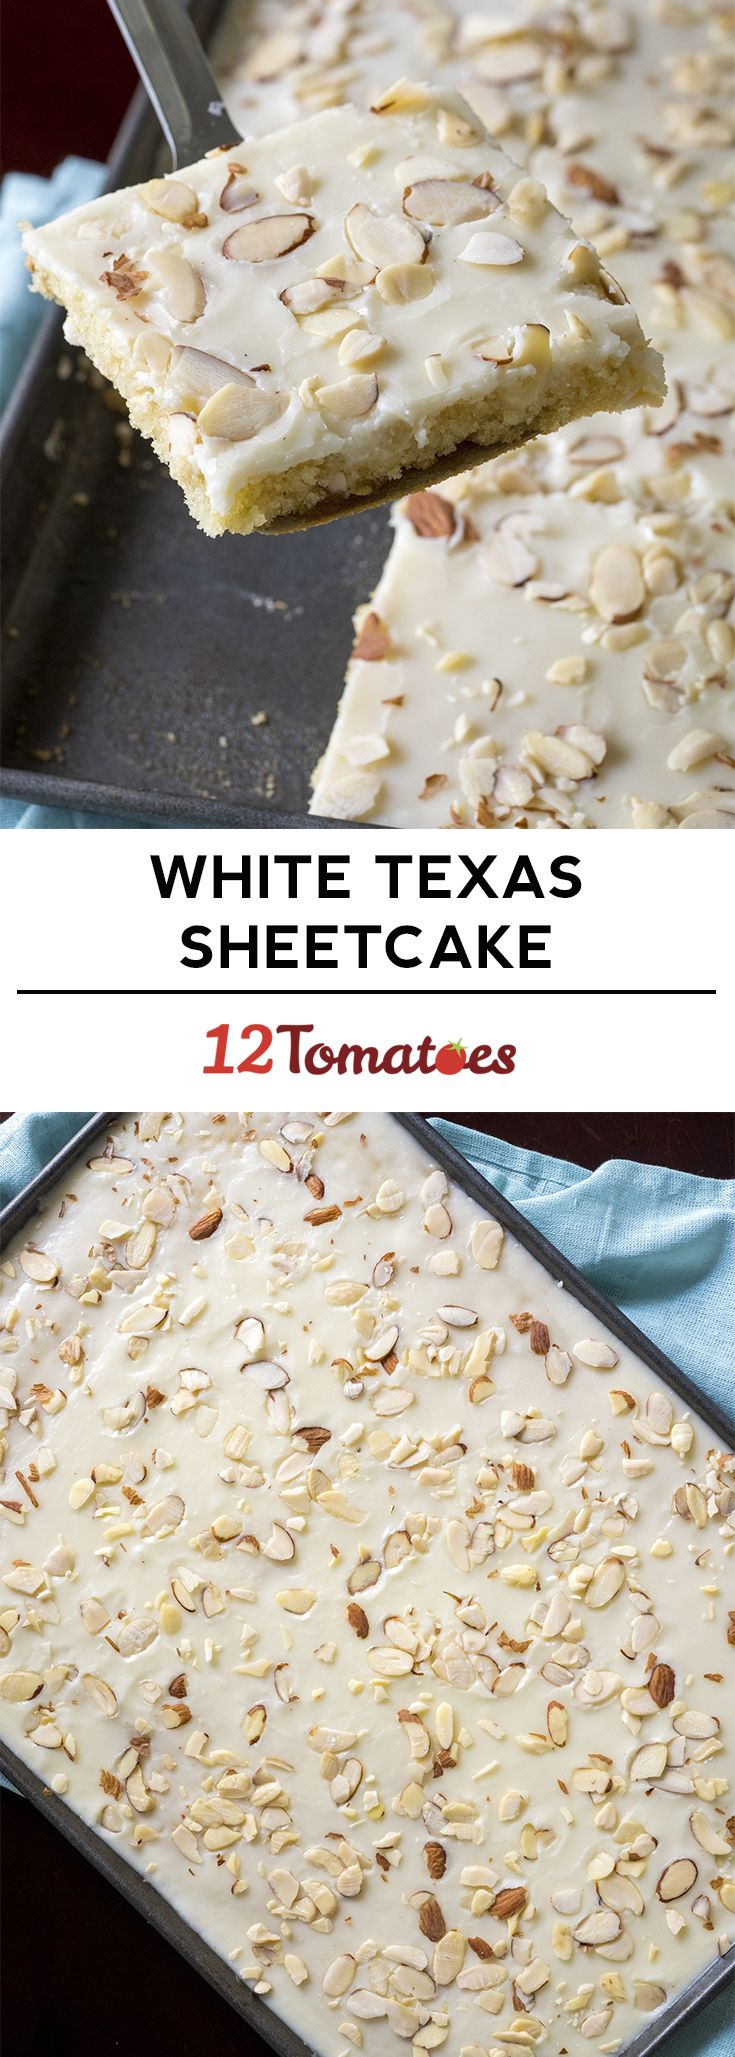 White Texas Sheetcake  White Texas Sheet Cake